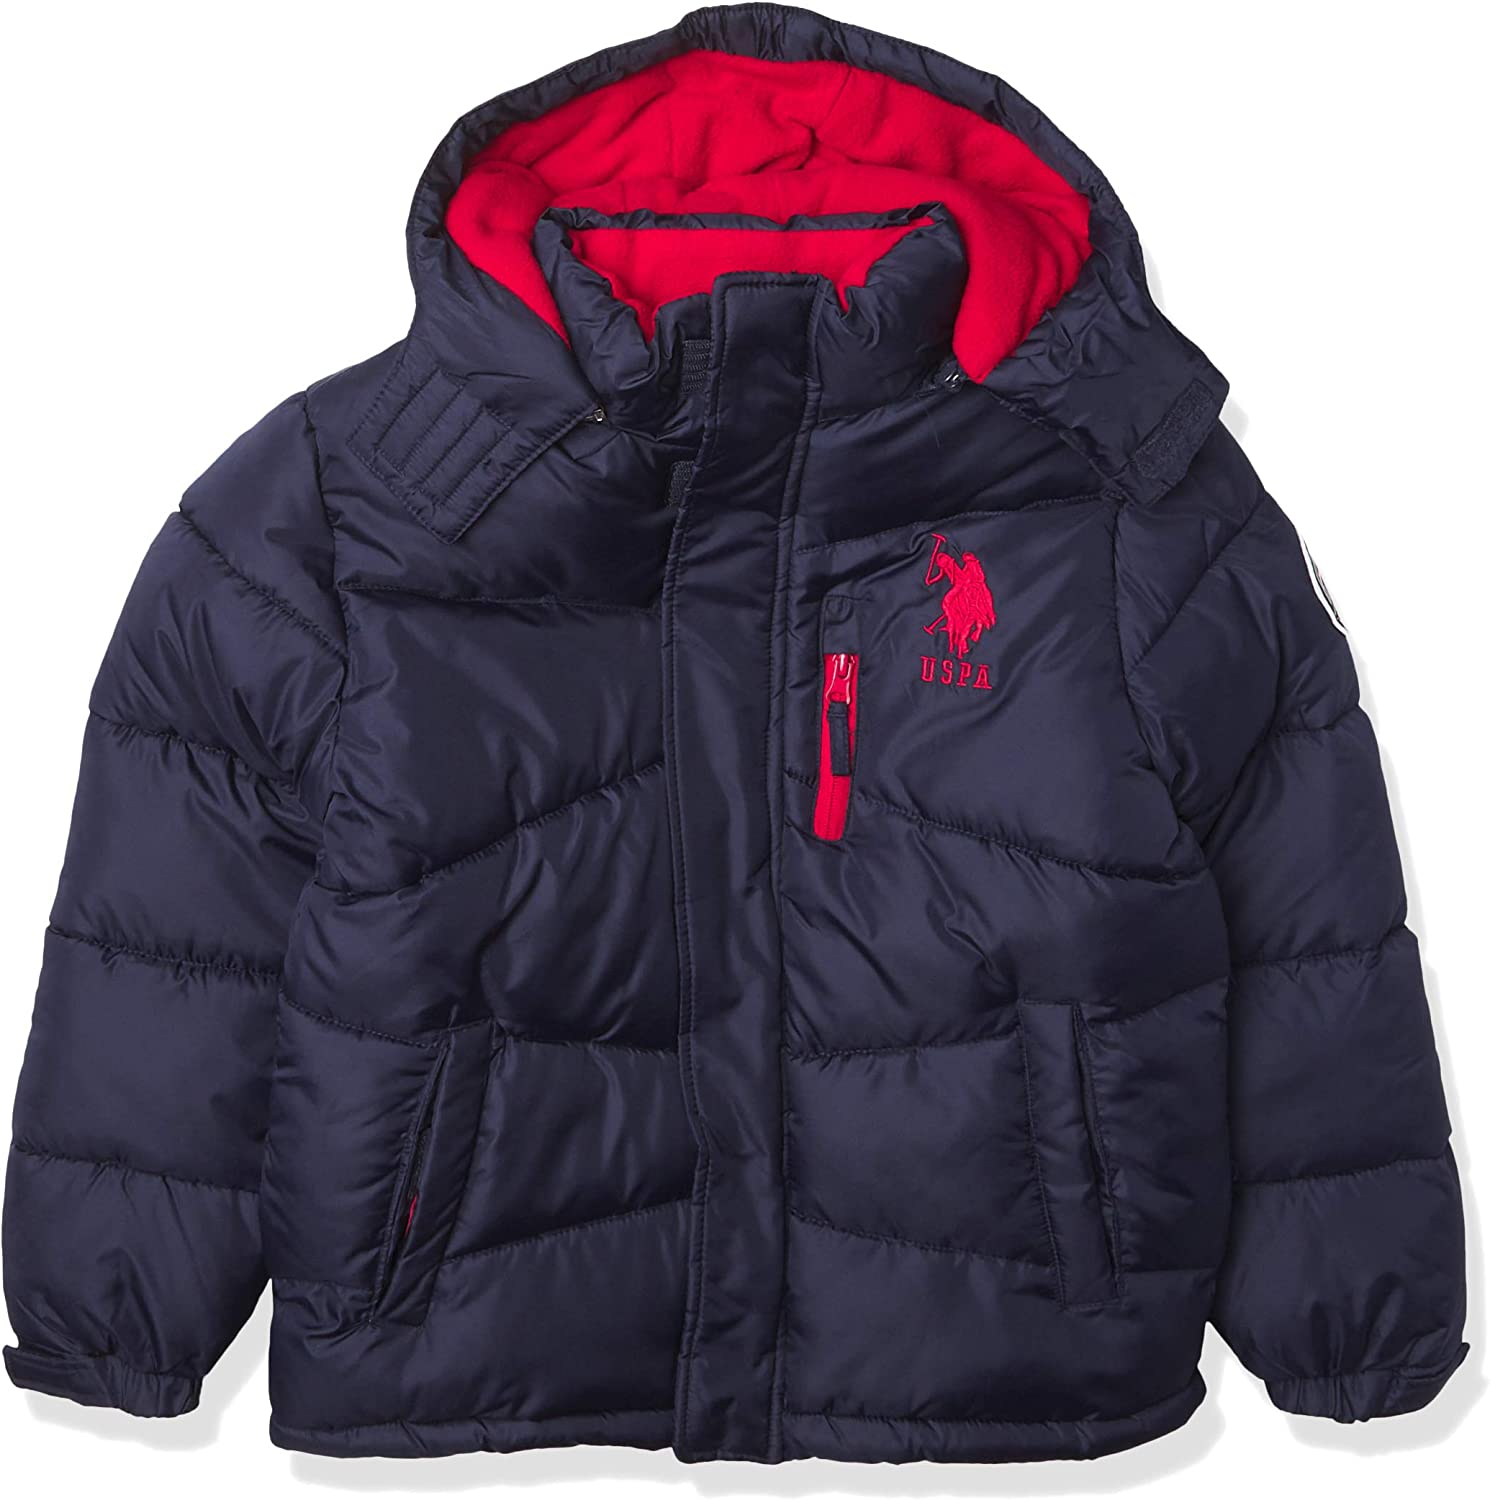 Cash special price U.S. Polo Assn. Puffer Boys' Max 88% OFF